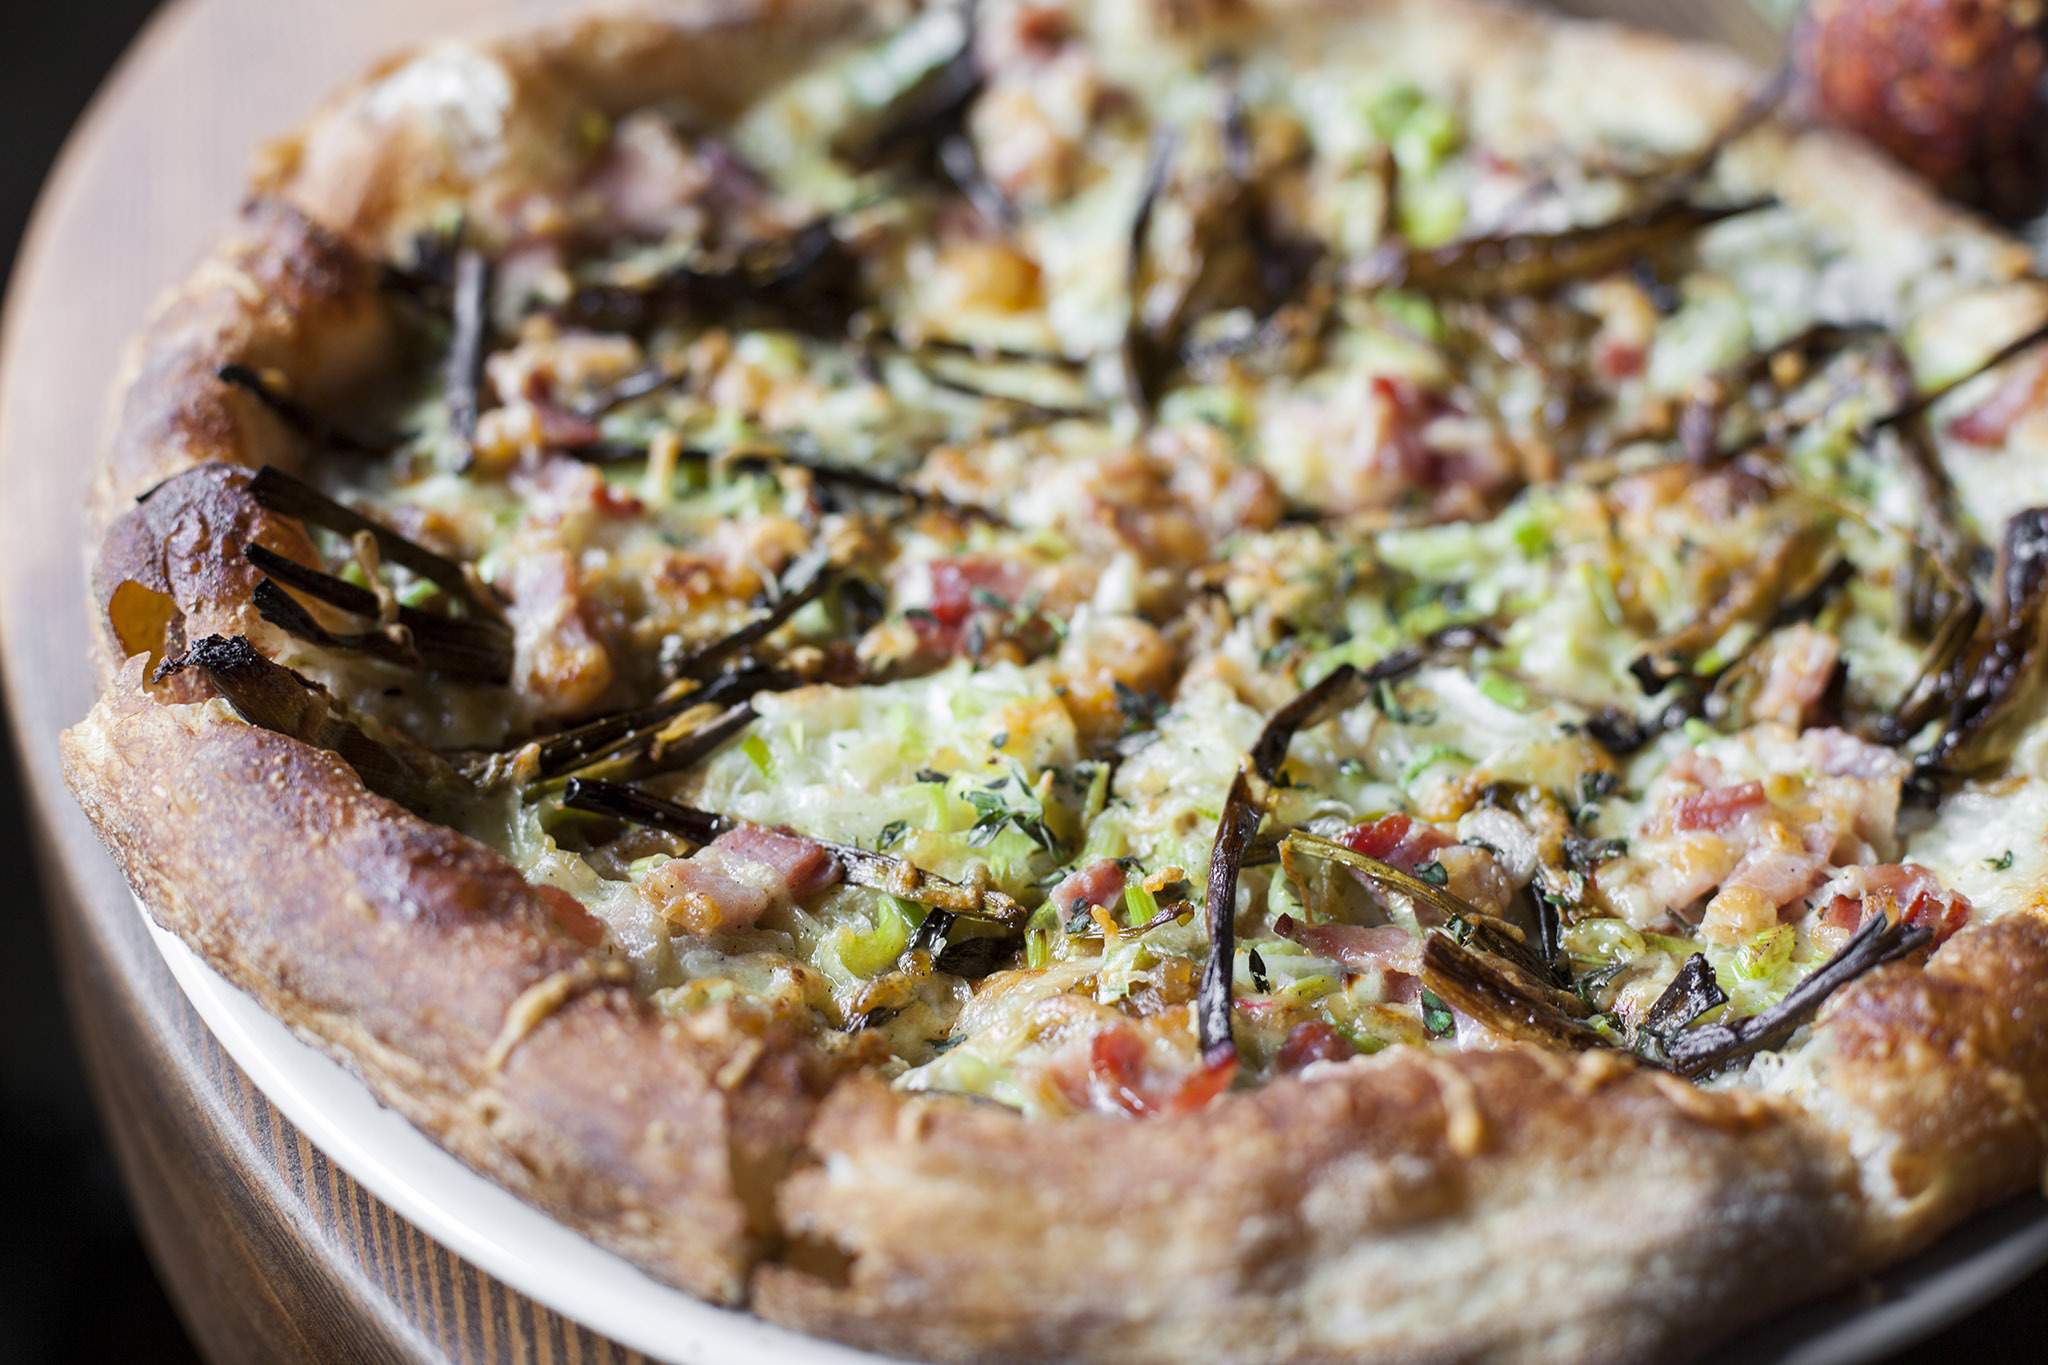 Spring onion and smoked bacon pizza at Stella Barra